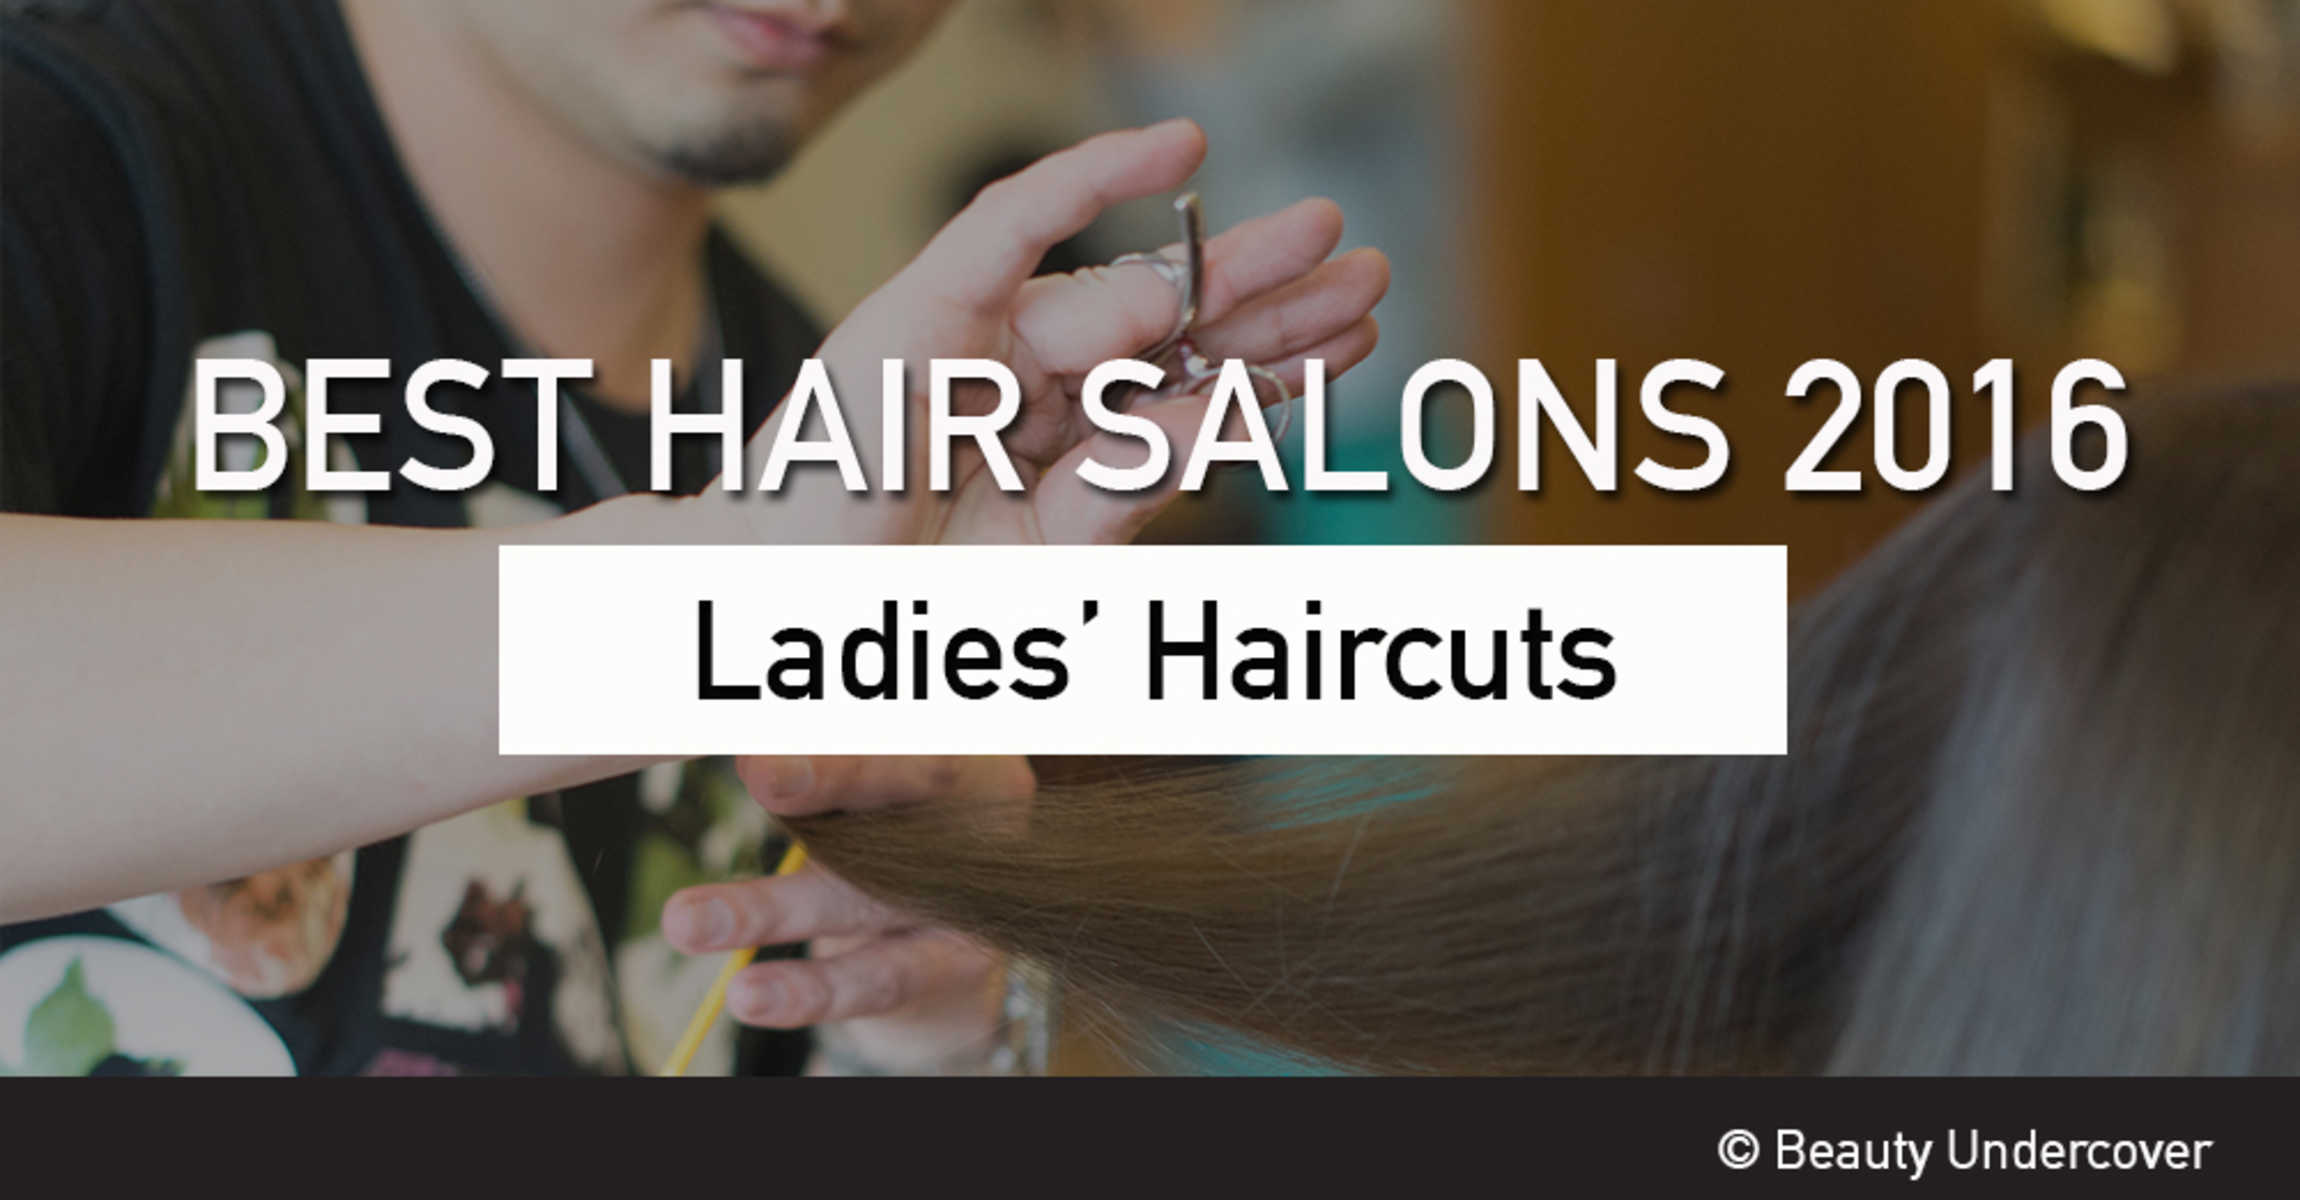 best hair salons for ladies' haircut in singapore 2016